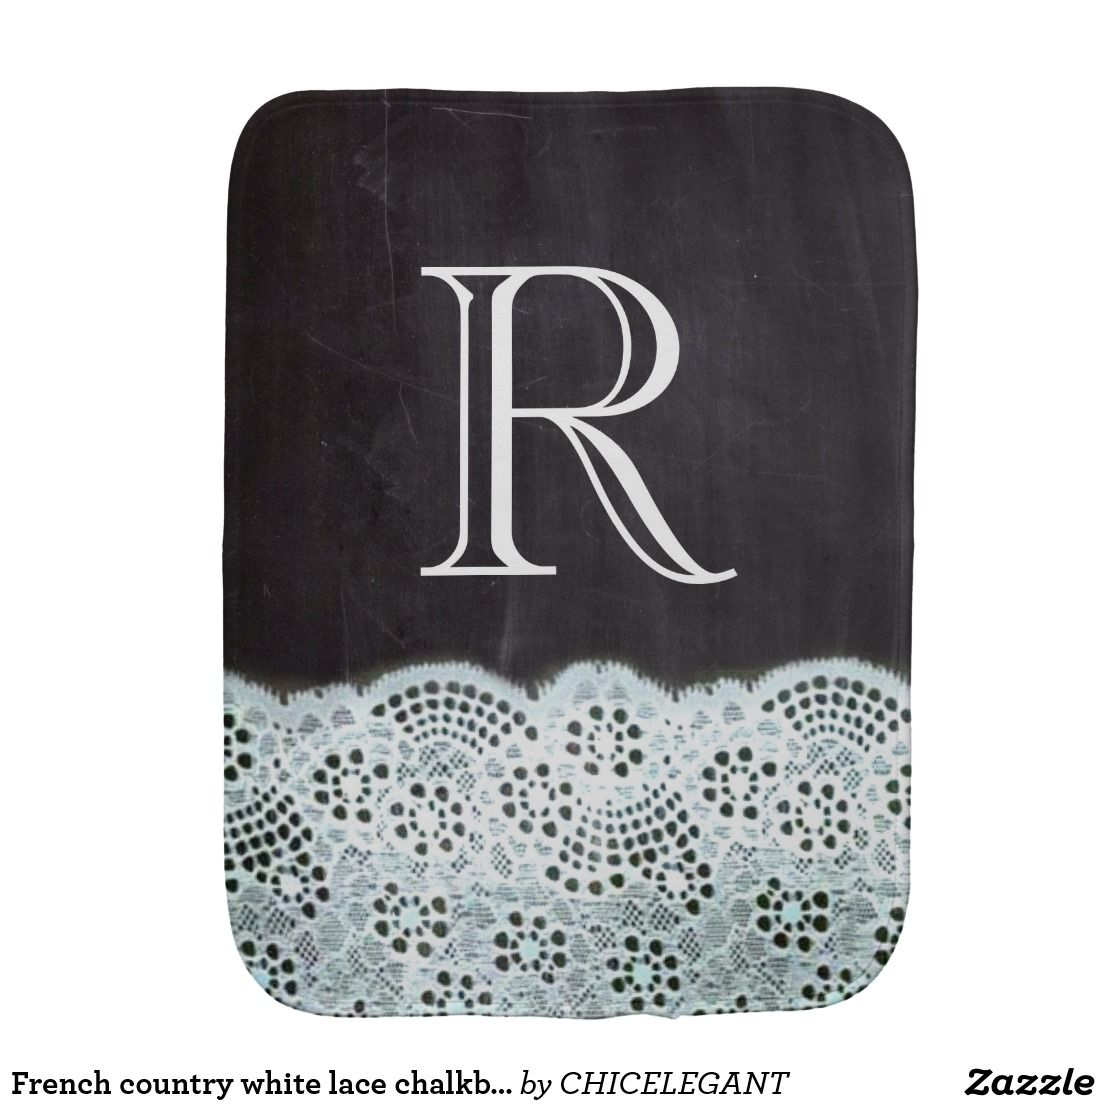 French country white lace chalkboard monogram burp